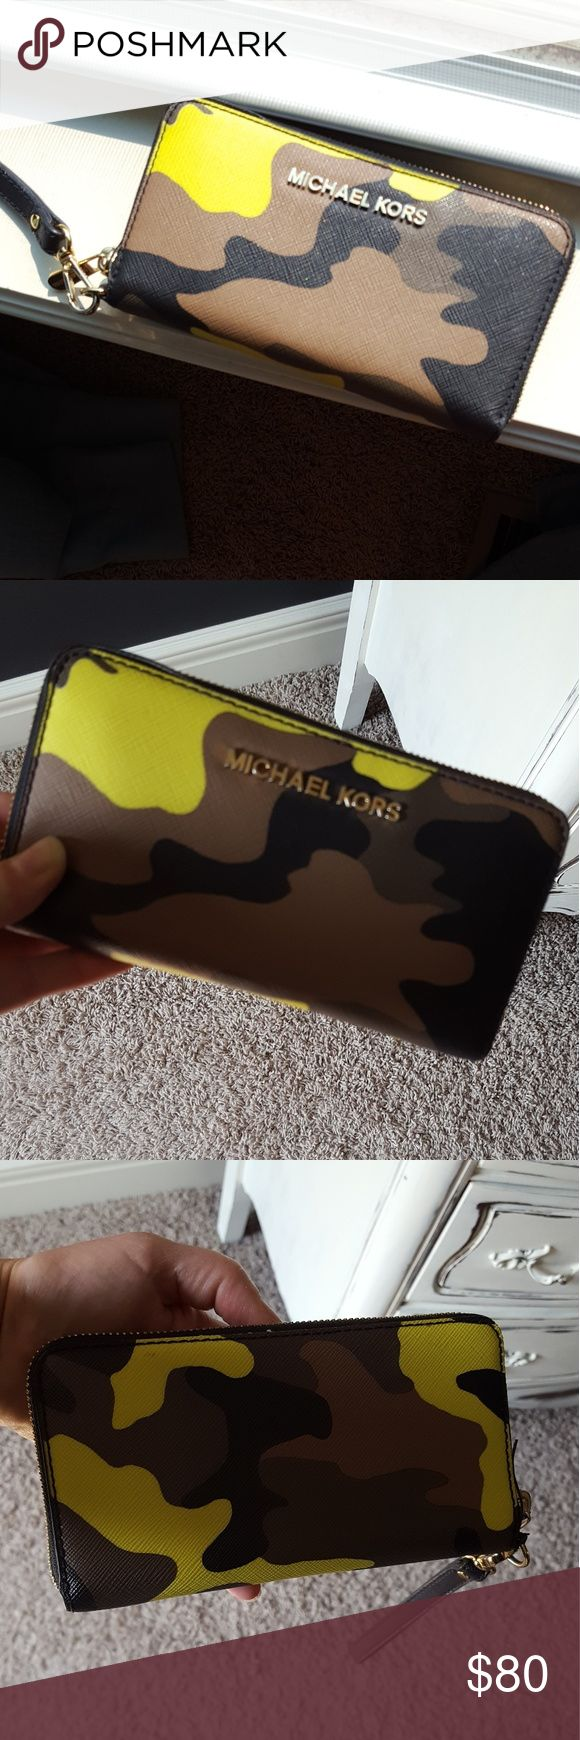 Michael Kors Jet Setter Wristlet Wallet Michael Kors Jet Setter Wristlet Wallet. Camo wristlet wallet with credit card slots, phone slot, open compartments & zipper section. You can fit a lot in here! The glazing around the edges is not perfect (see photos). Not noticable when worn.  Saffiano leather in perfect condition.  Nice interior as well. Michael Kors Bags Wallets